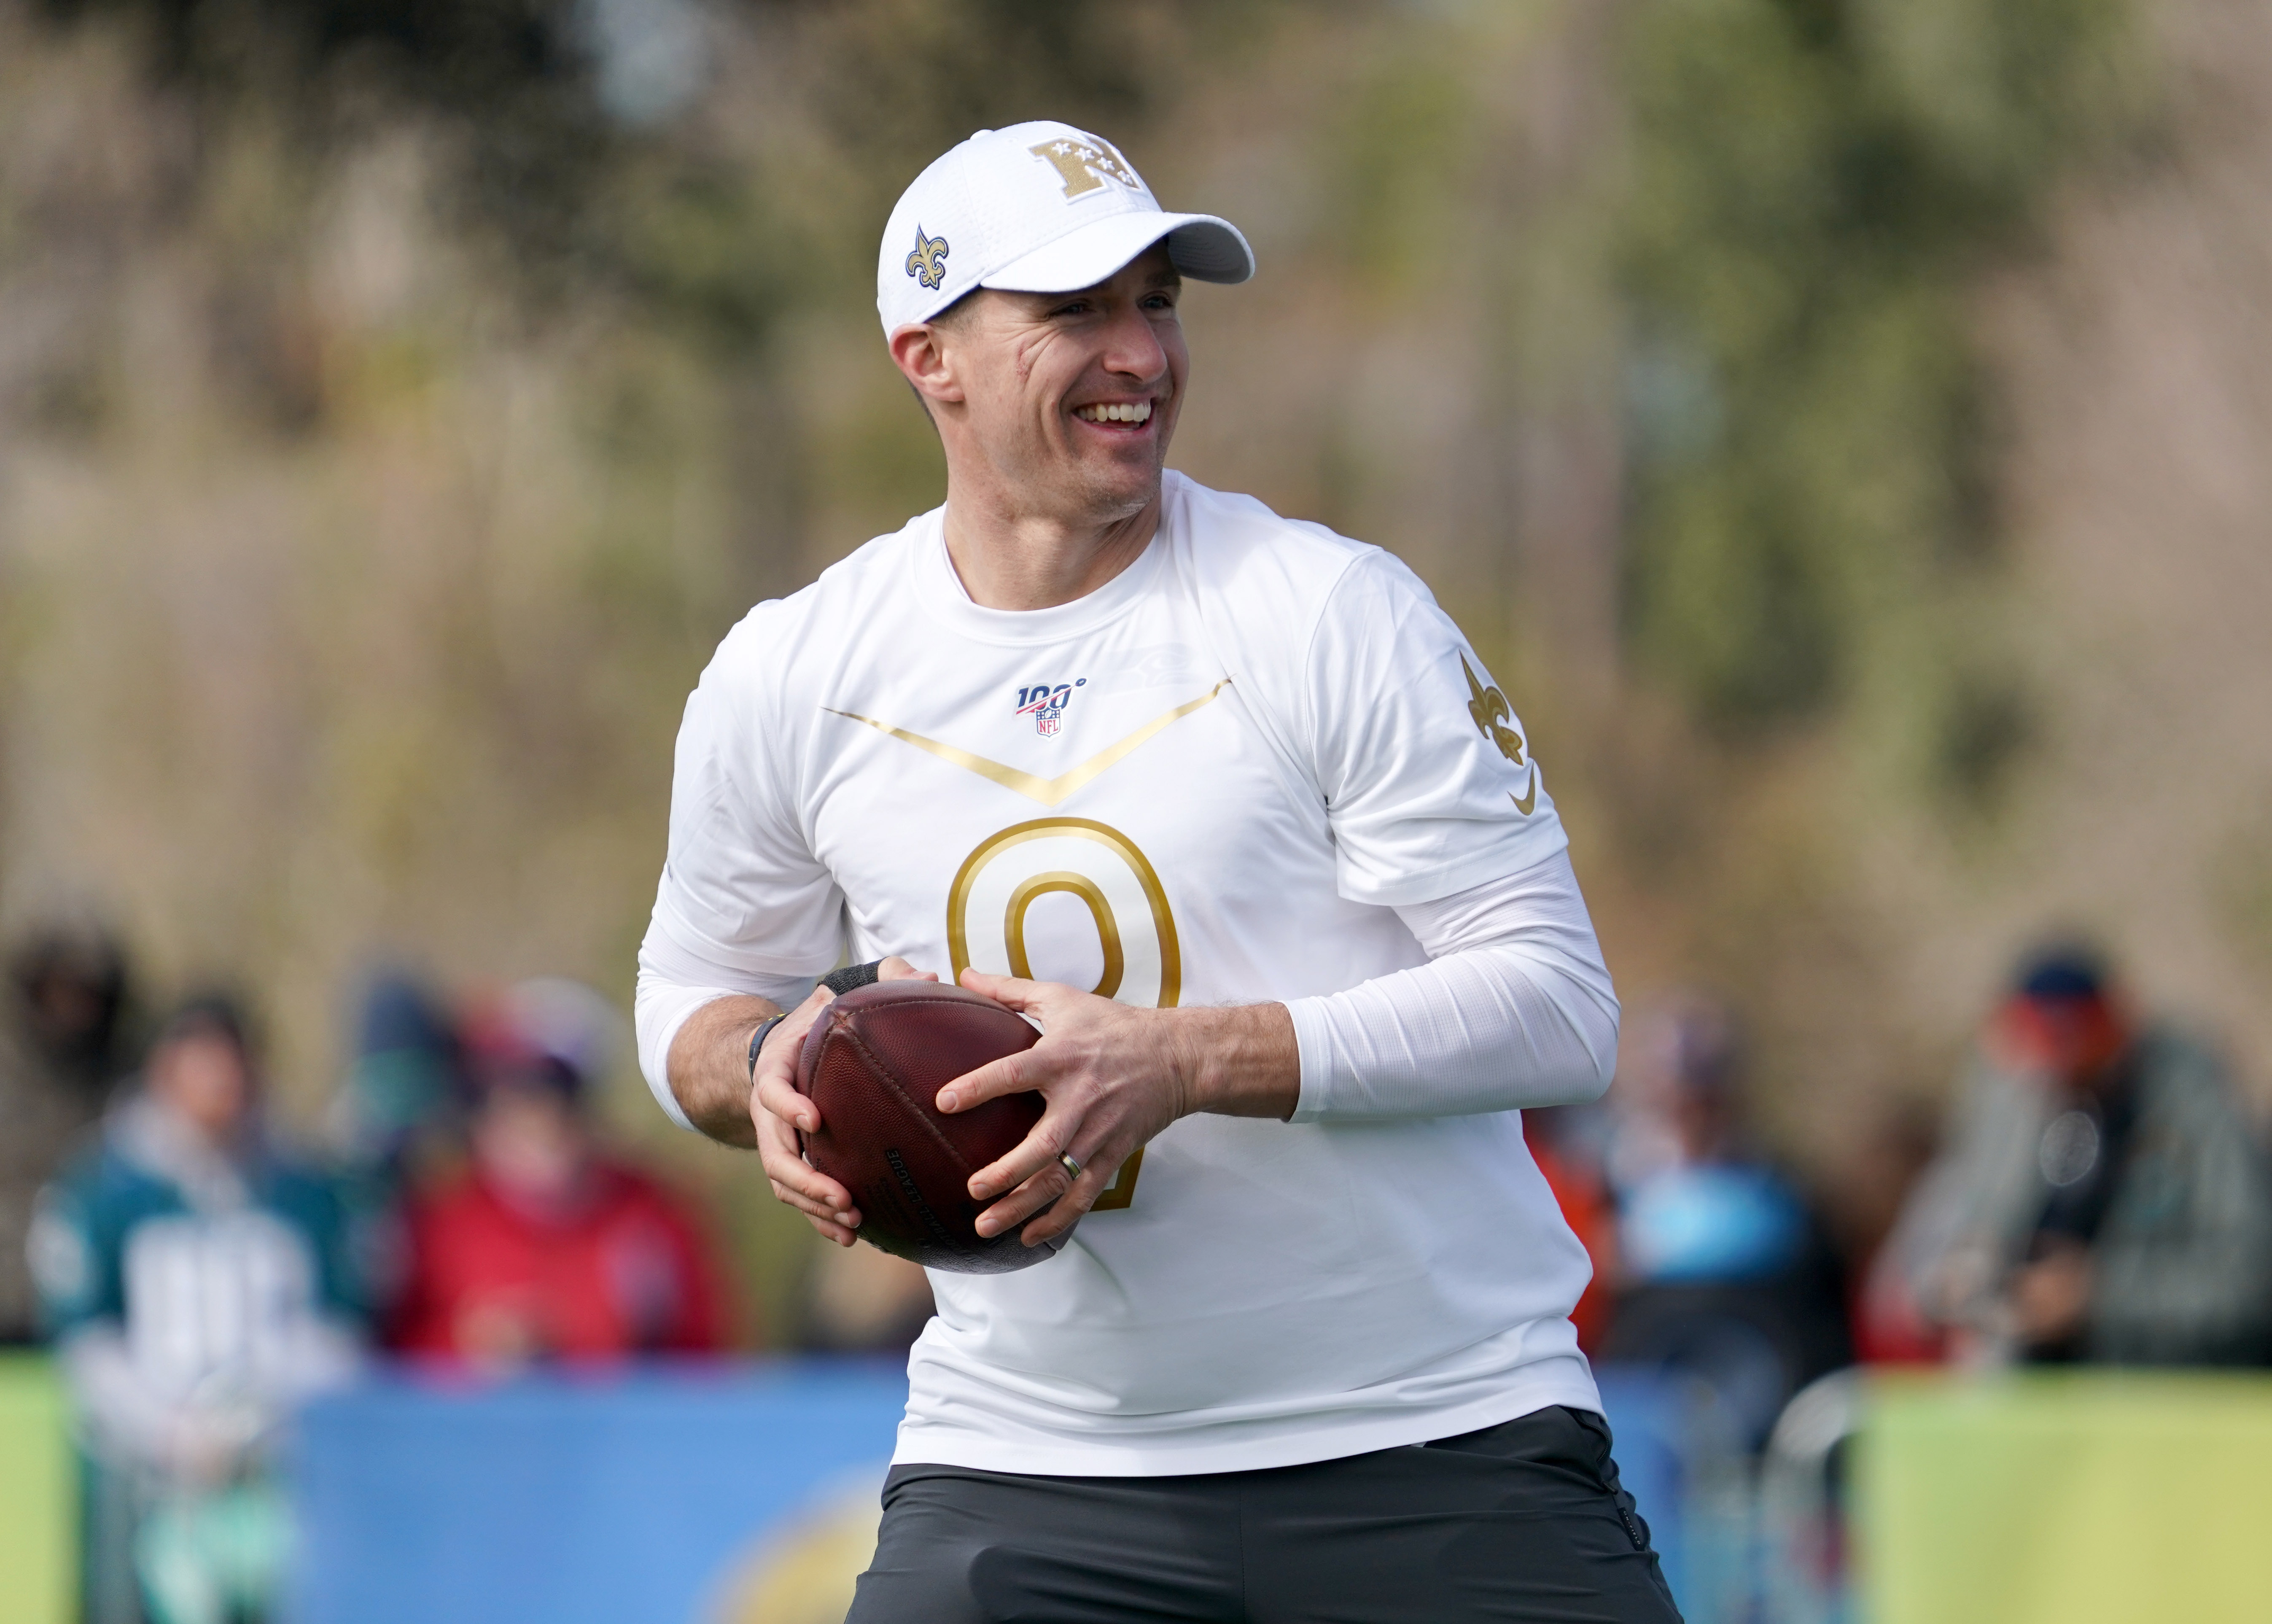 Drew Brees announces he's returning to Saints in epic Instagram post